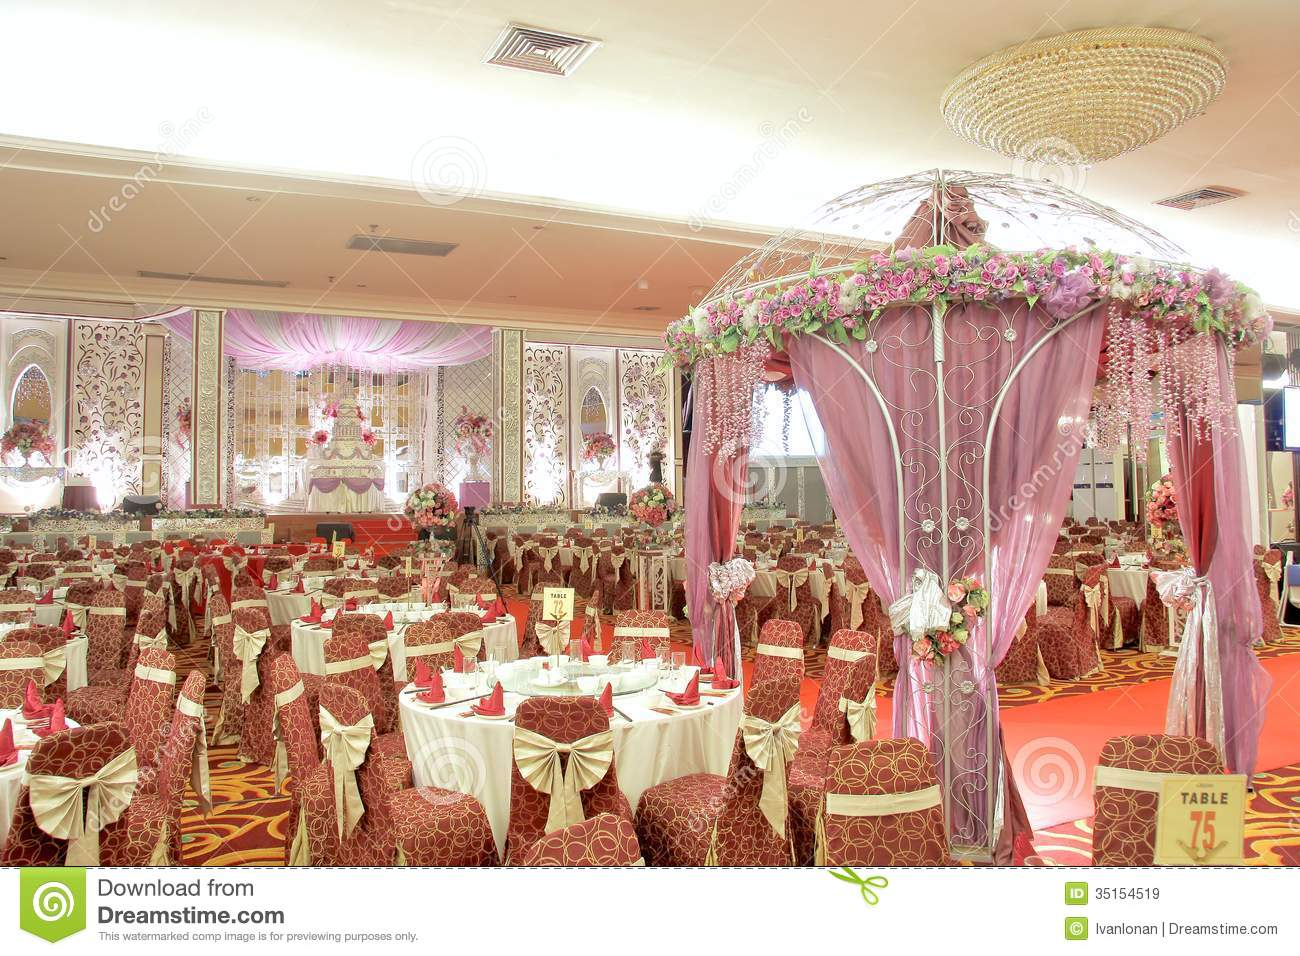 Elegance wedding decoration royalty free stock images for Anniversary decoration images